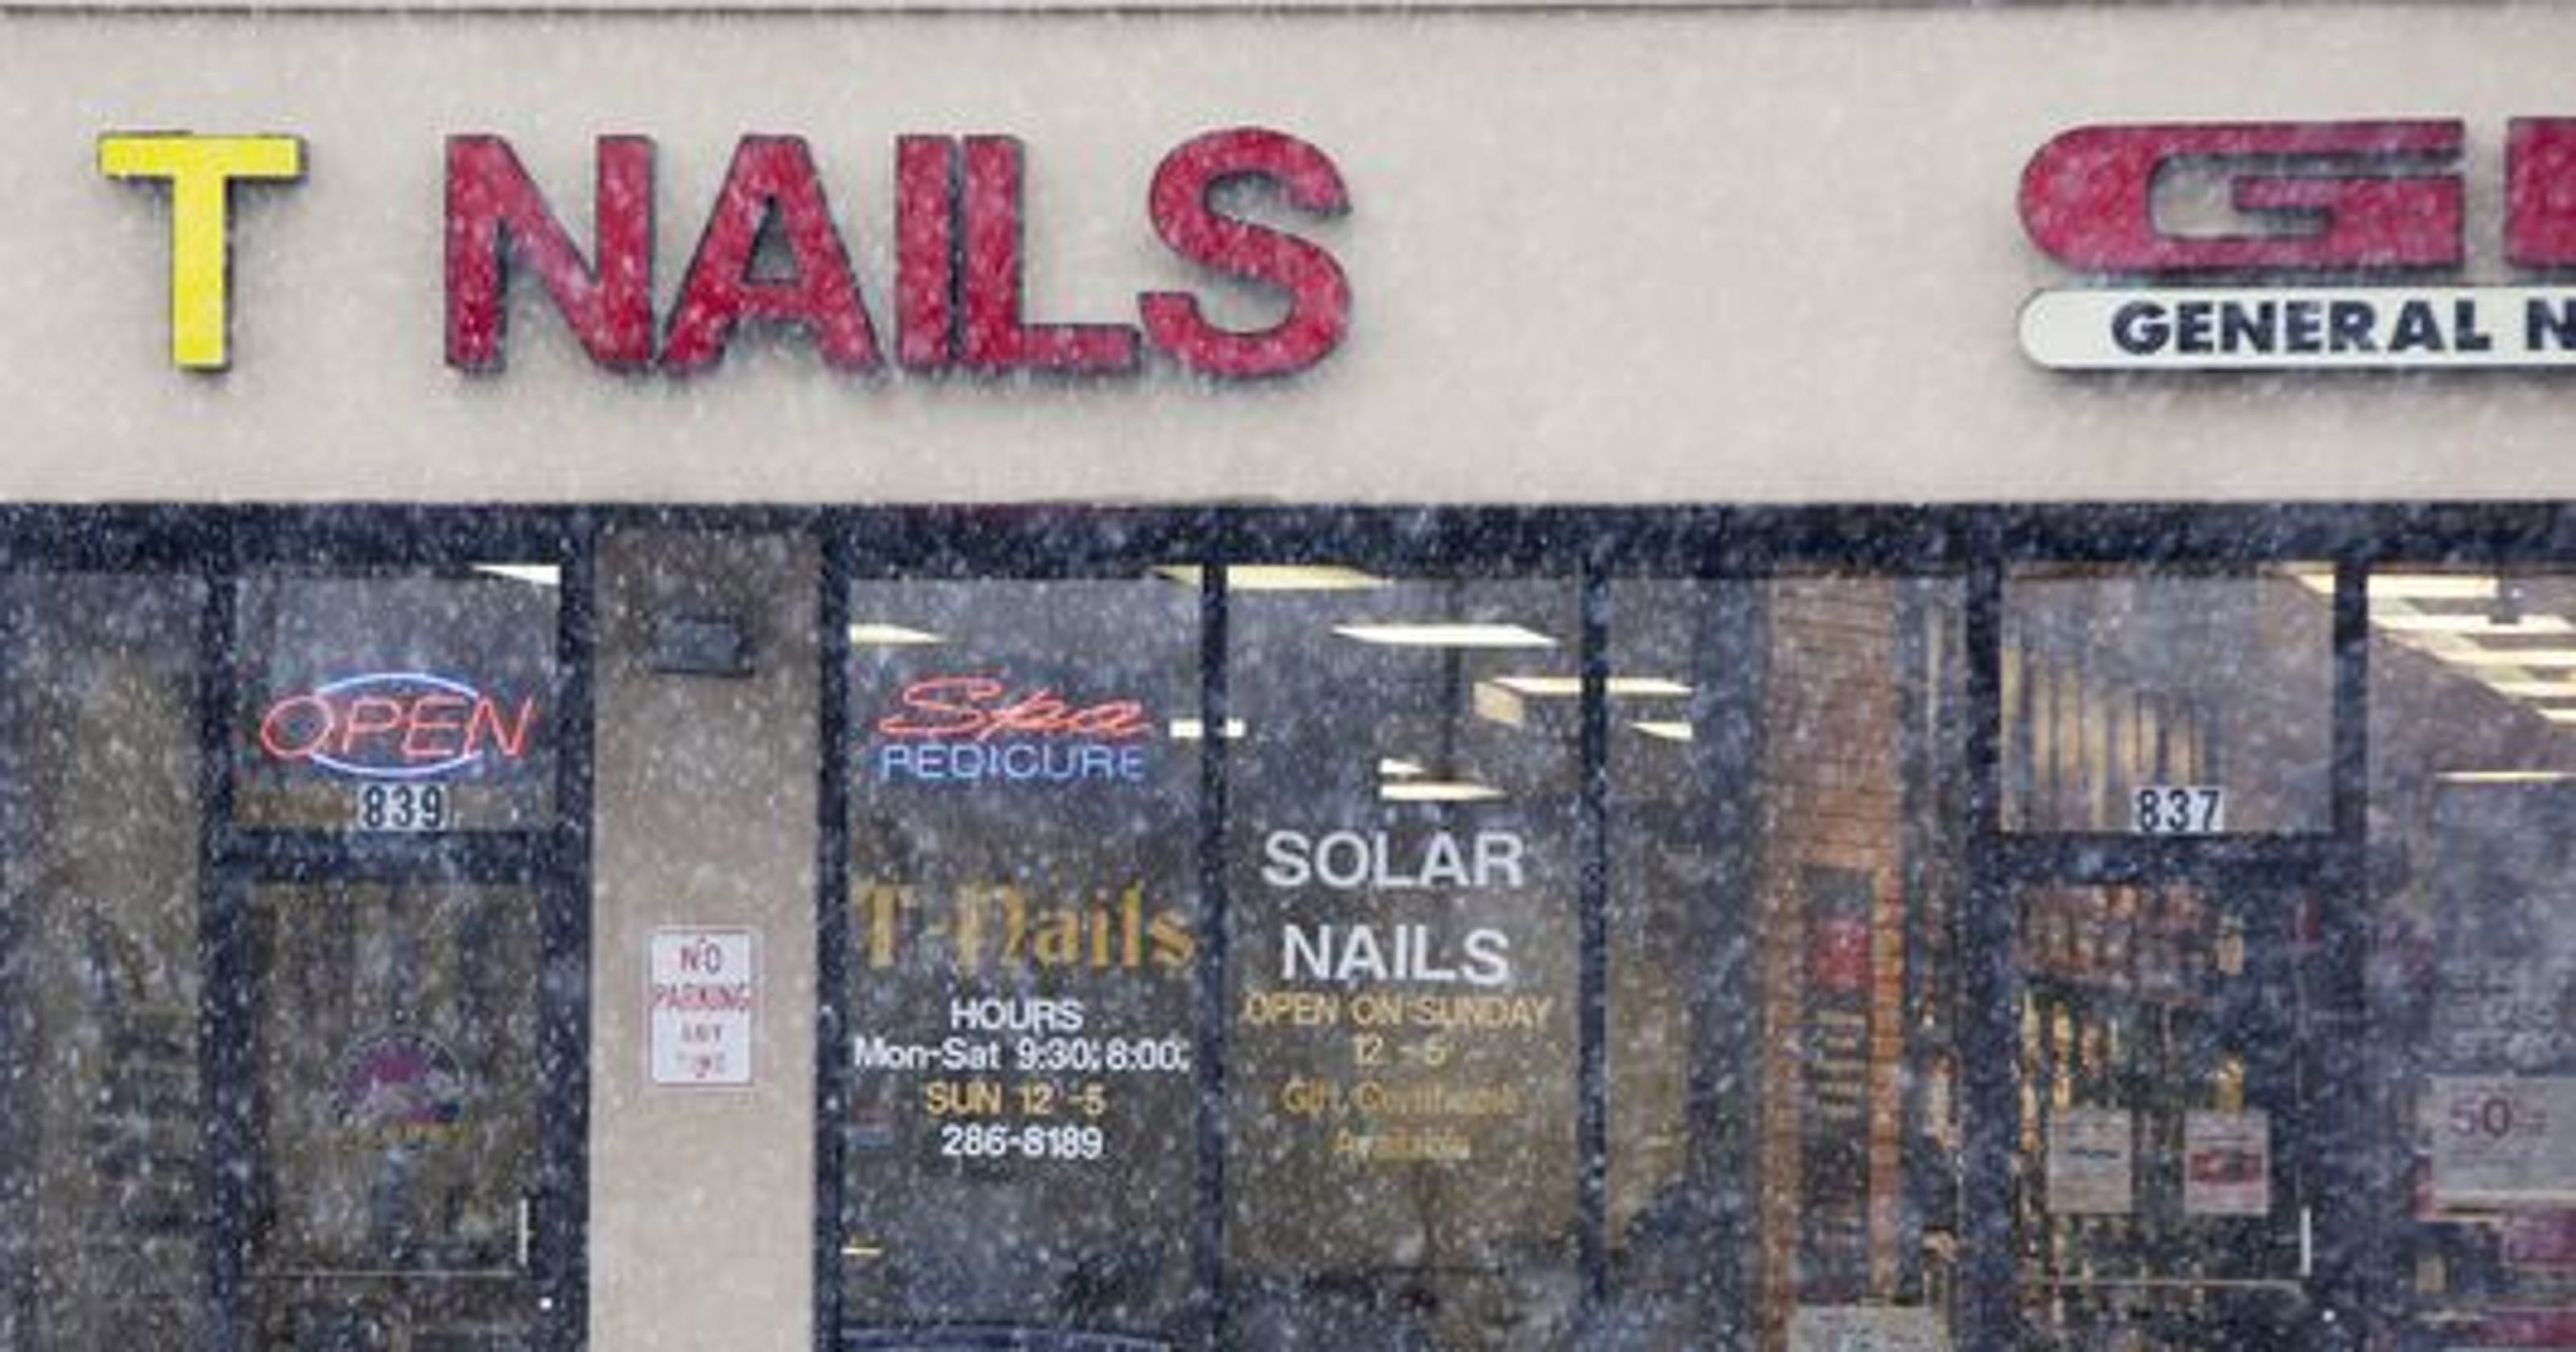 Nail salon sued over 'life-threatening' infection